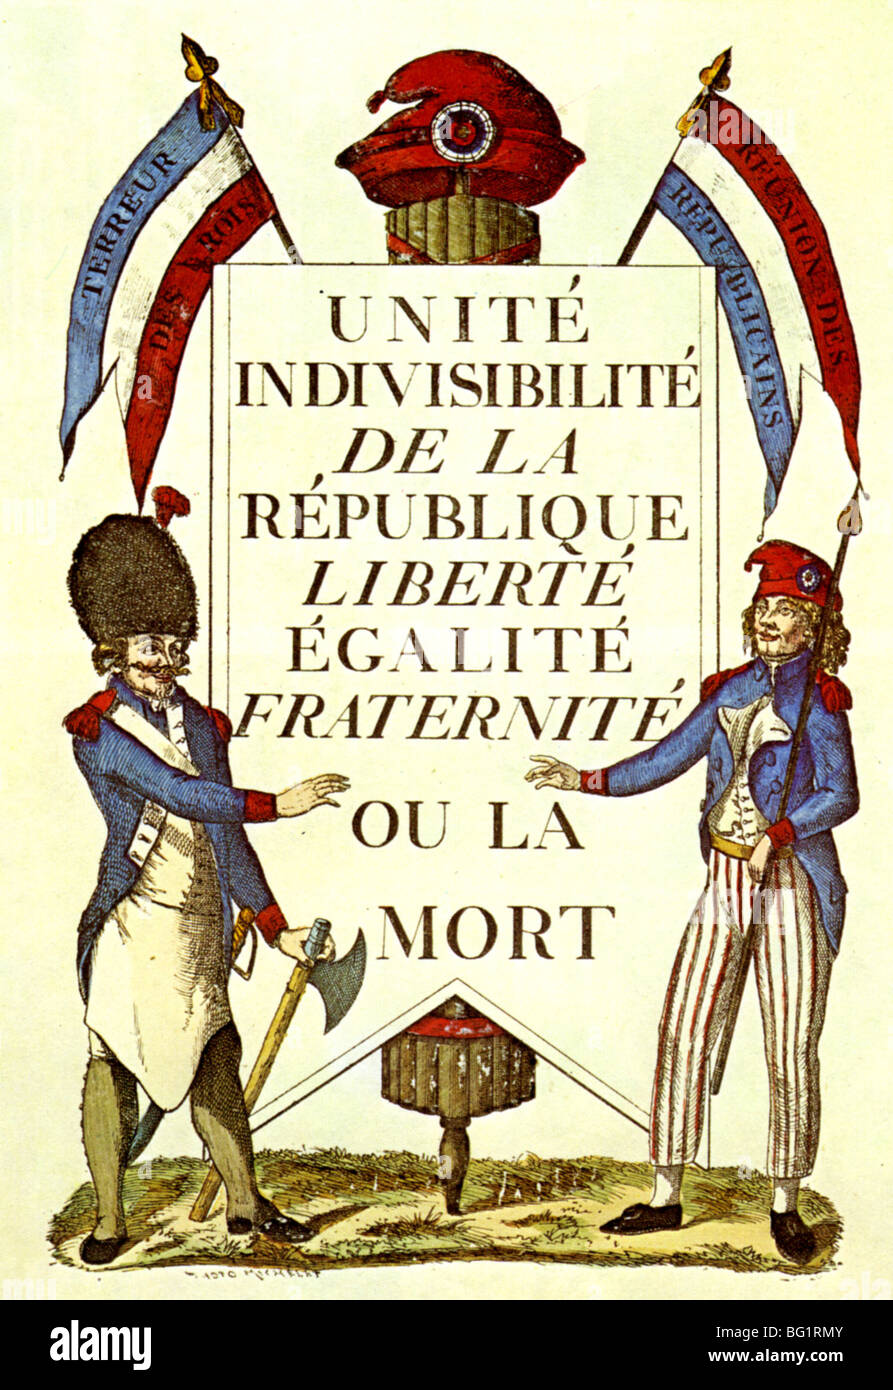 the french revolution adopted liberty equality and fraternity Of liberty, equality and fraternity, the last is the biggest challenge it is not just an idea but a way of life with deep roots in the french tradition it is equally familiar in islam.